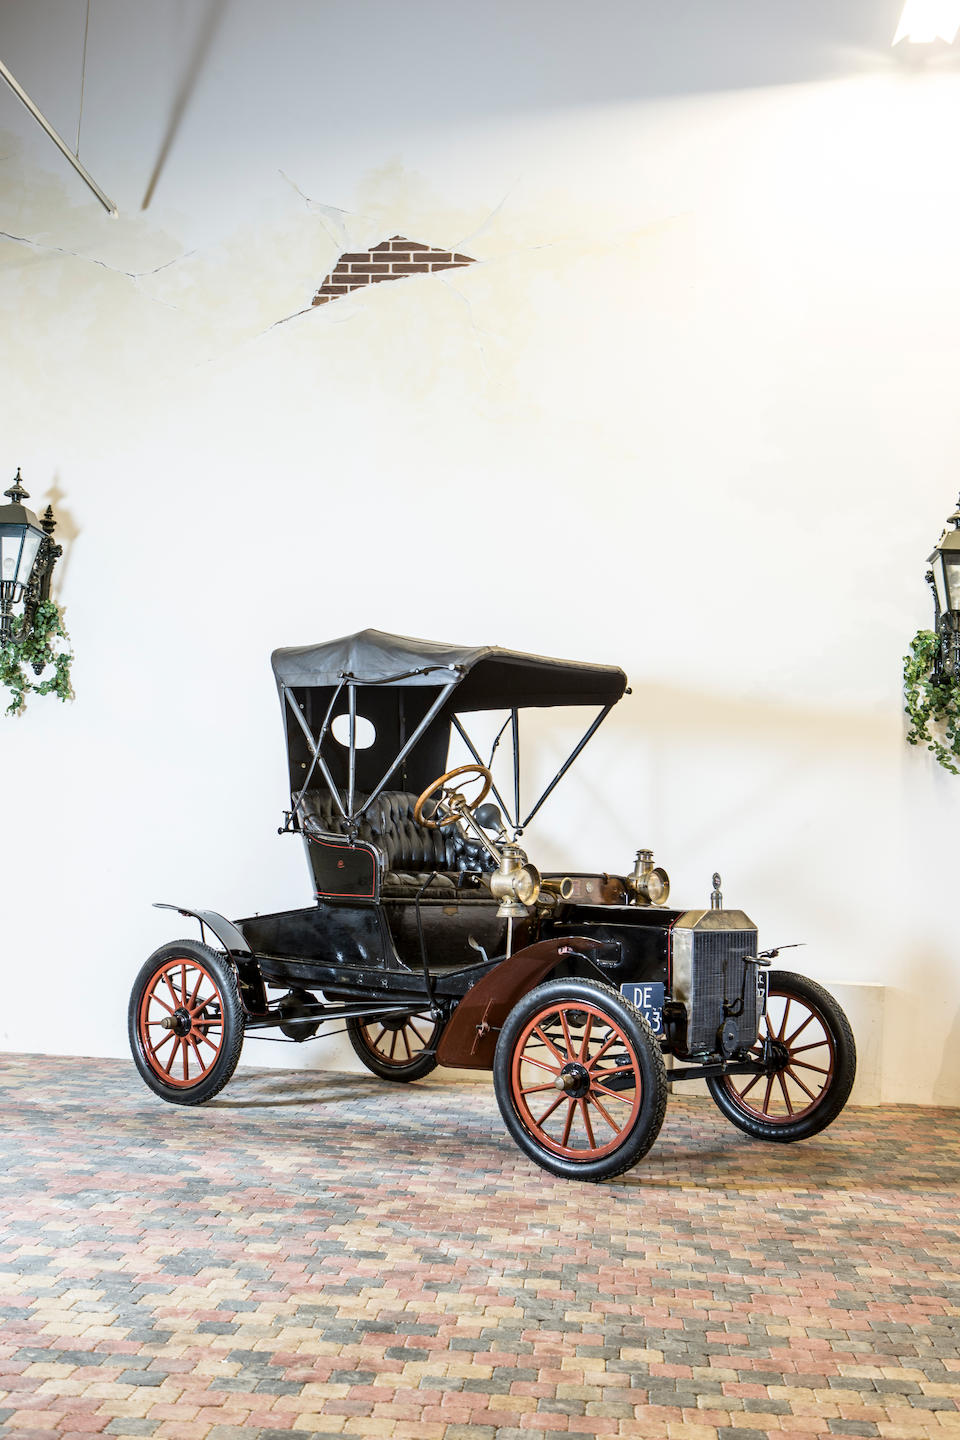 <b>1907 Ford MODEL N 15HP RUNABOUT</b><br />Chassis no. 4908 <br />Engine no. 4908